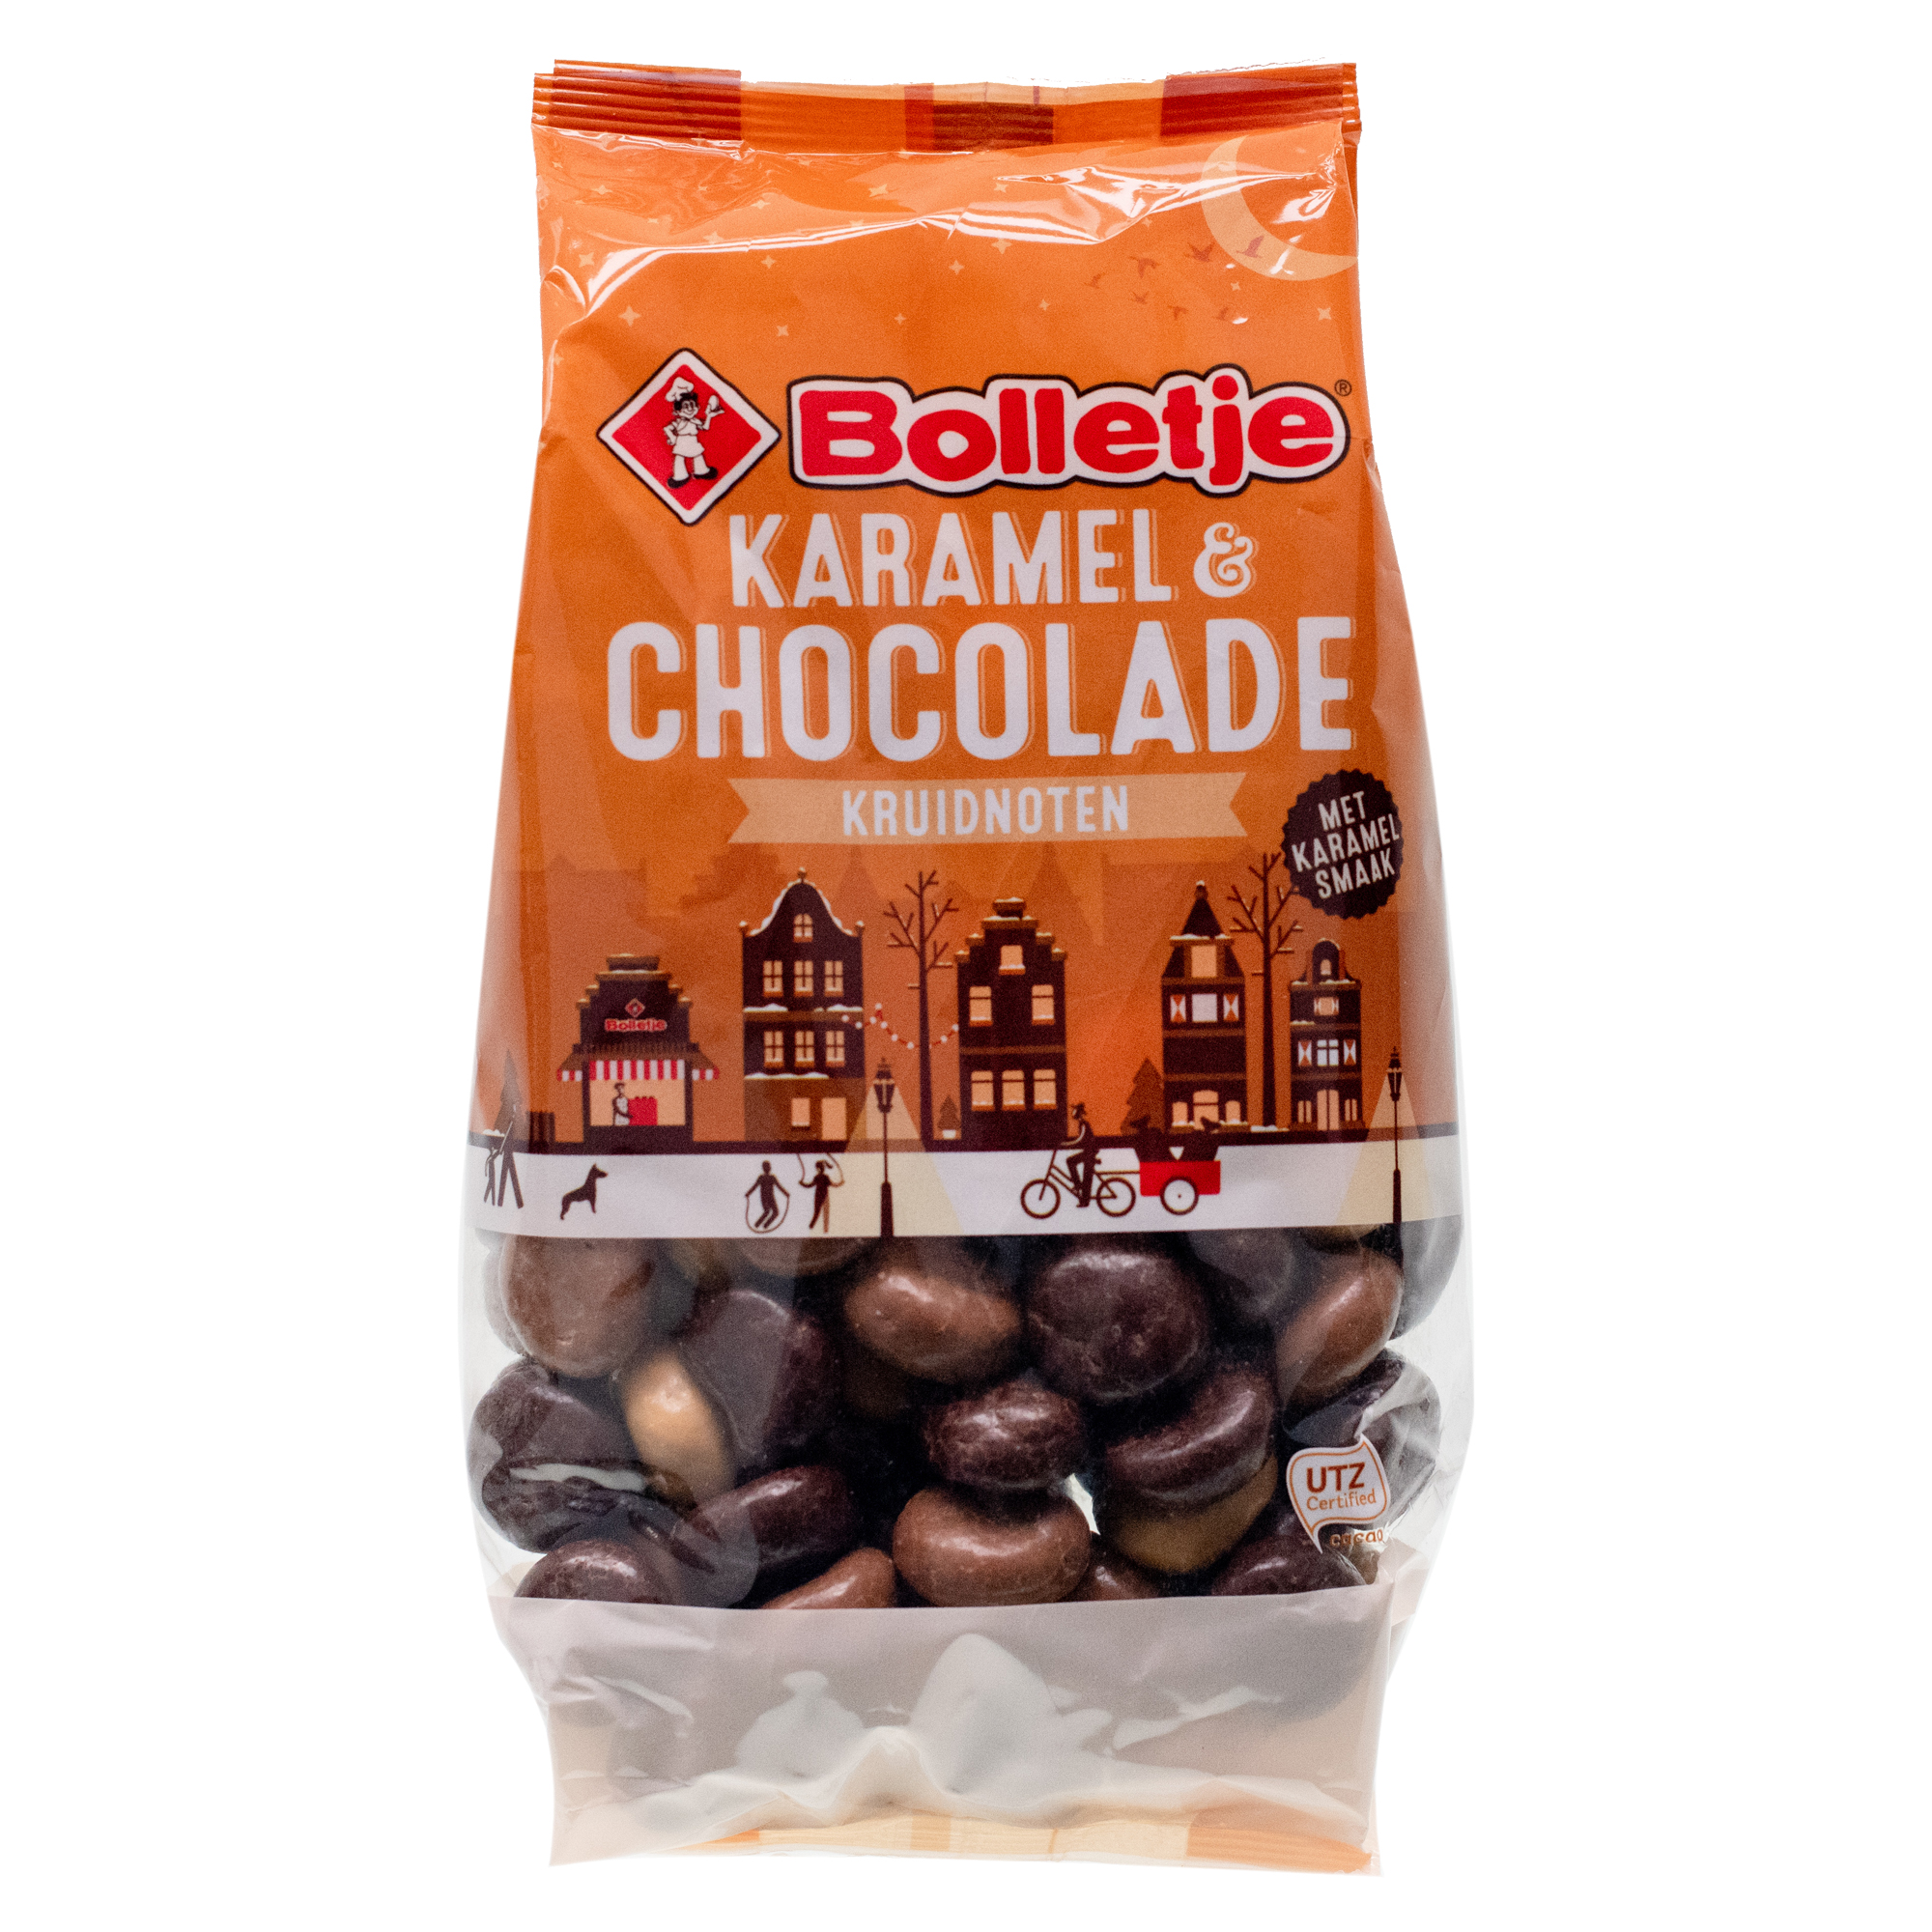 Bolletje Caramel & Chocolate Kruidnoten 10.5oz